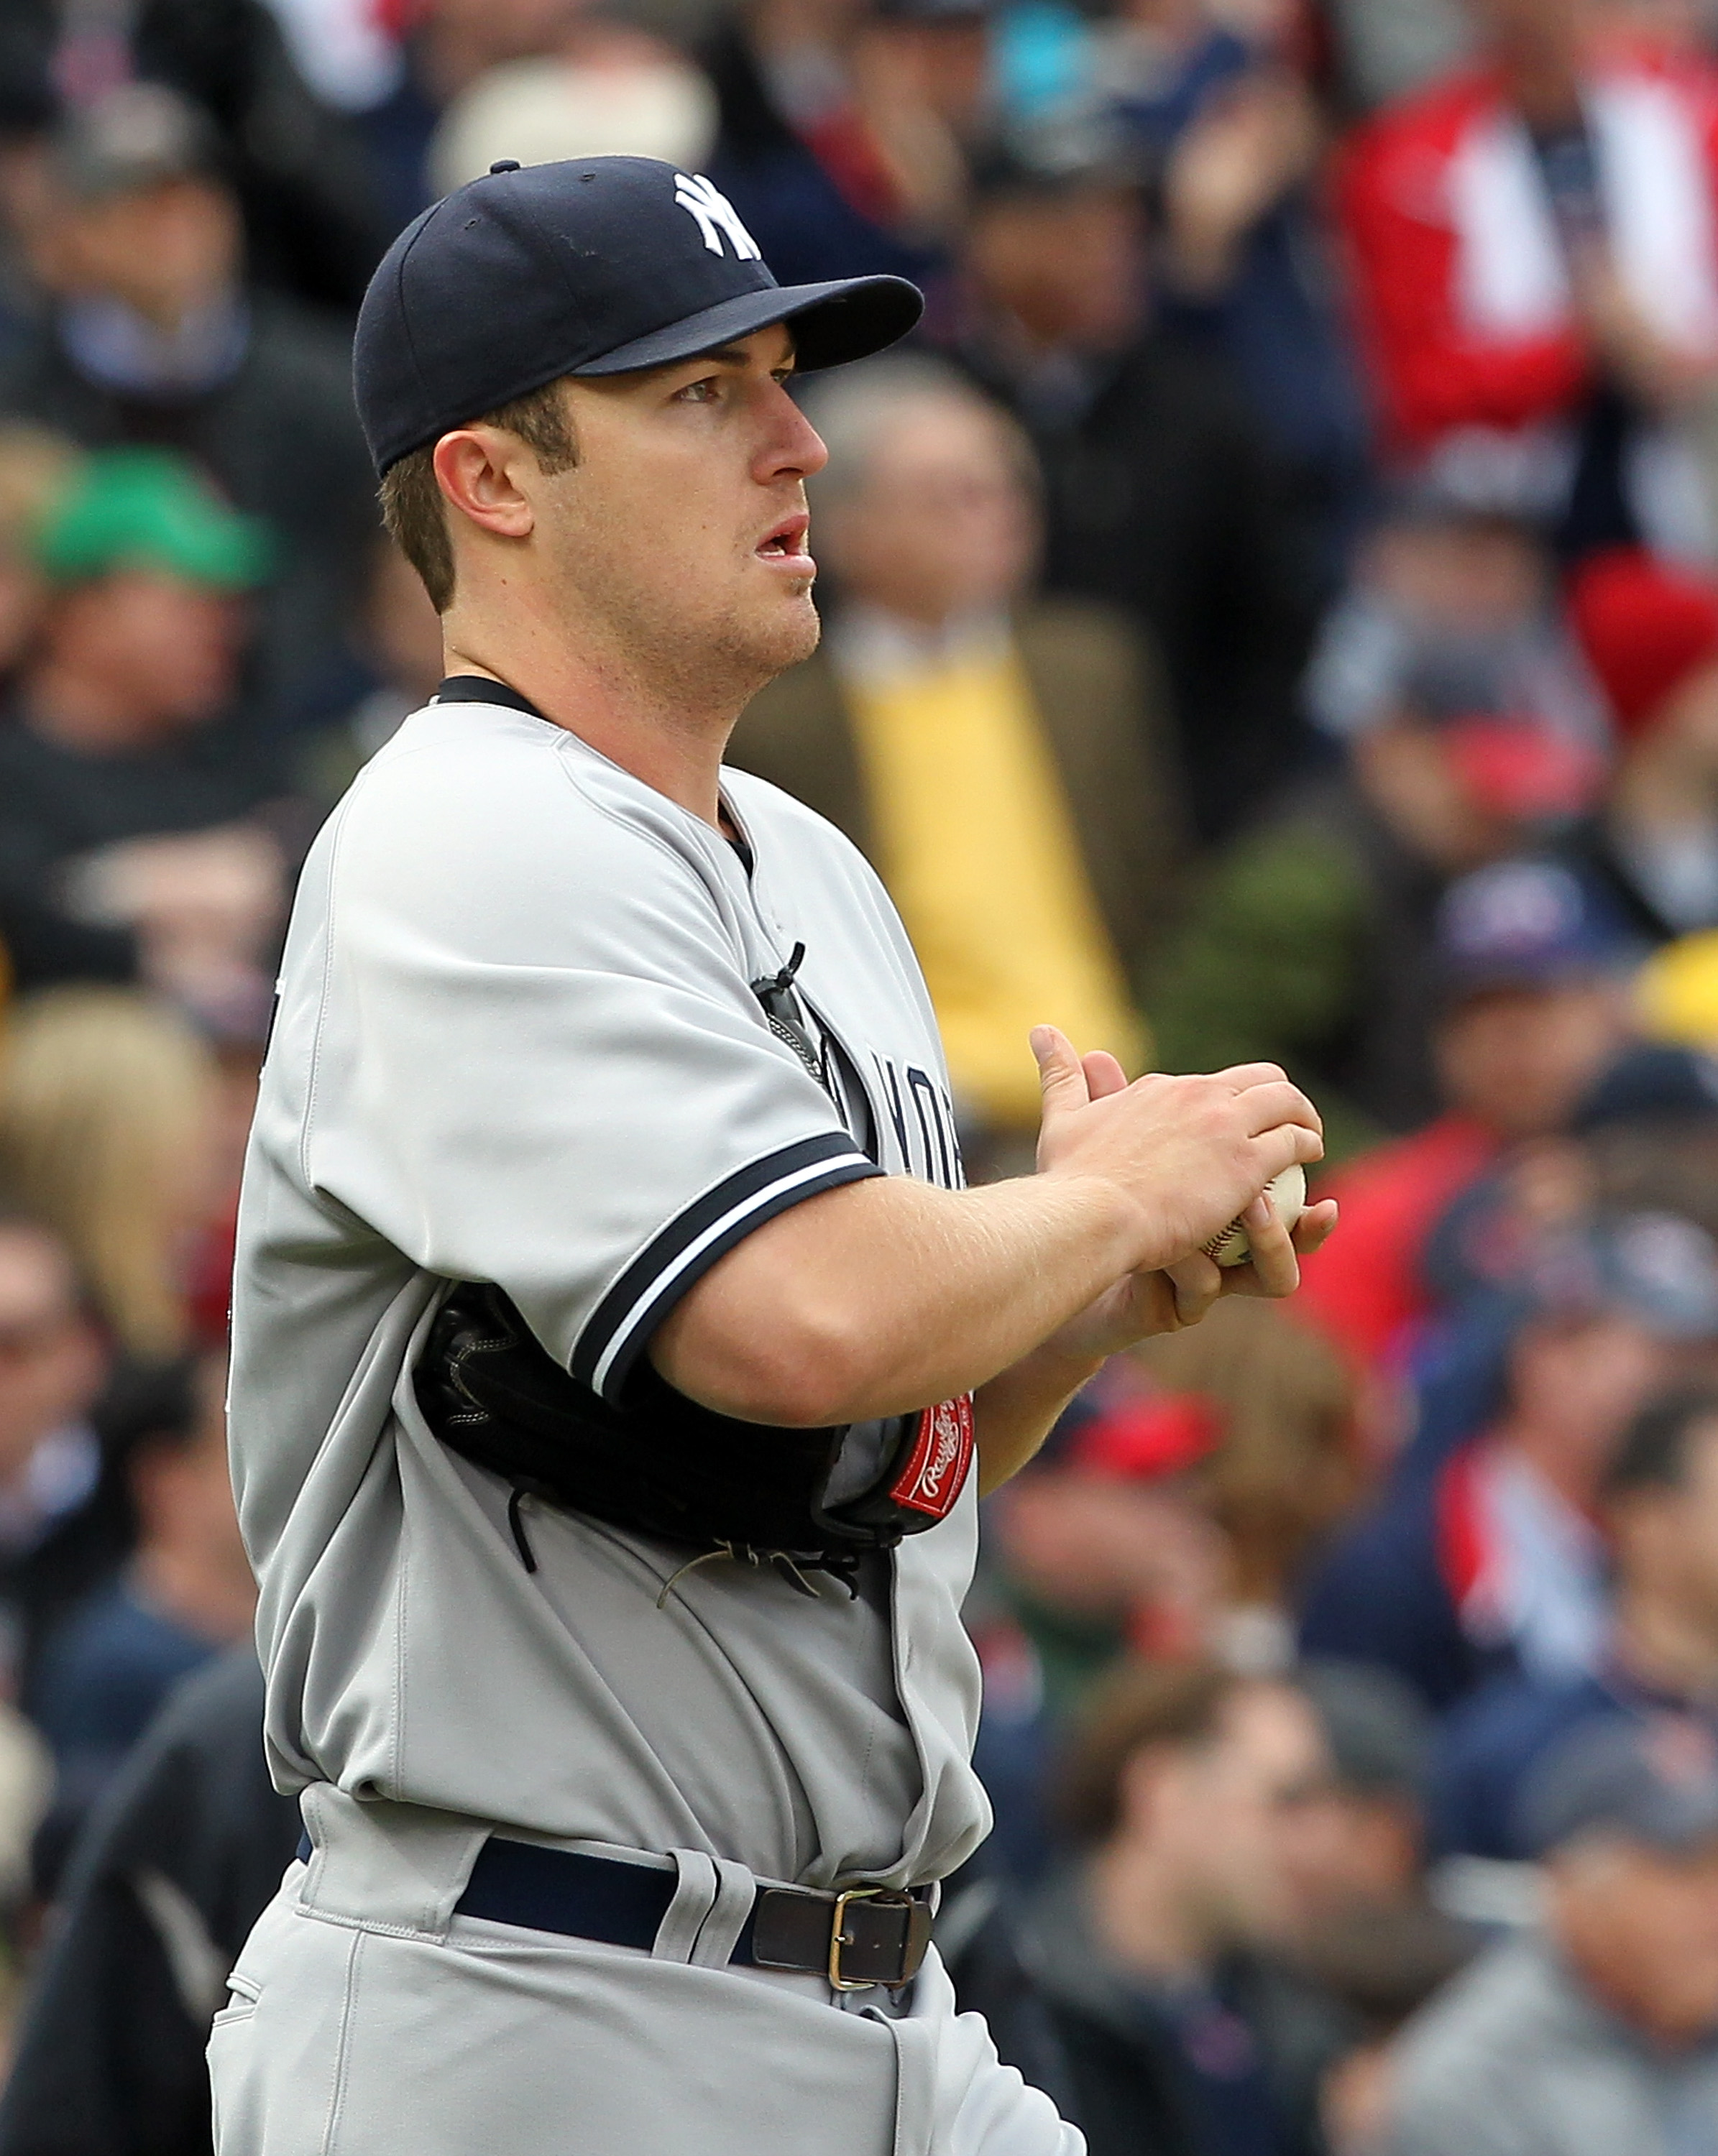 BOSTON, MA - APRIL 8:  Phil Hughes #65 of  the New York Yankees reacts during a rough second inning against the Boston Red Sox on Opening Day at Fenway Park on April 8, 2011 in Boston, Massachusetts. (Photo by Jim Rogash/Getty Images)